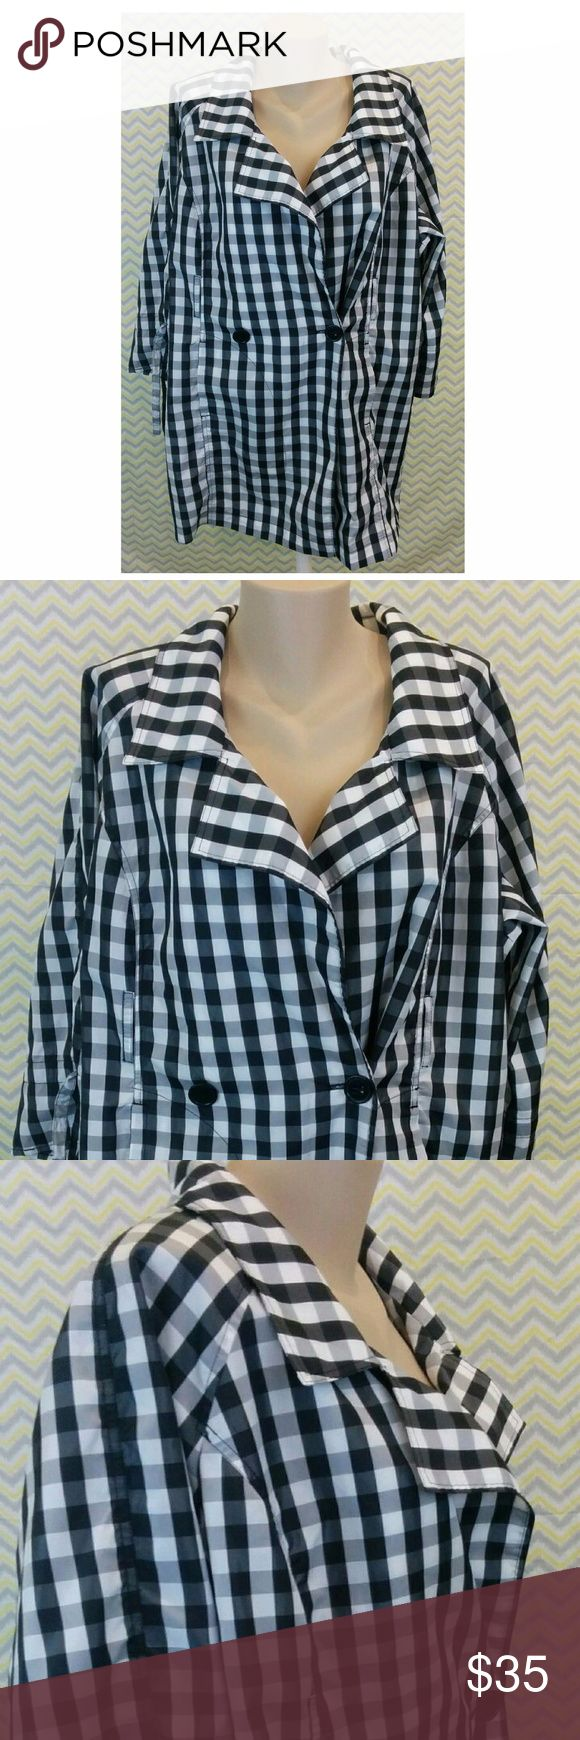 Checkered Rain Coat Button Close Jacket Plaid B/W Brand: Lane Bryant Size: 18/20 Item: Women's Plus Size 1 Button Checkered Rain Jacket Color: Black & White Jacket has belt loops, no belt included  Dimensions: Chest from seam under armpit to seam under armpit- approximately 24 inches Sleeve length from shoulder seam to bottom of sleeve- approximately 24 inches Length from top of shoulder to bottom of jacket - approximately 33 inches  Inventory -  R18 Lane Bryant Jackets & Coats Trench Coats